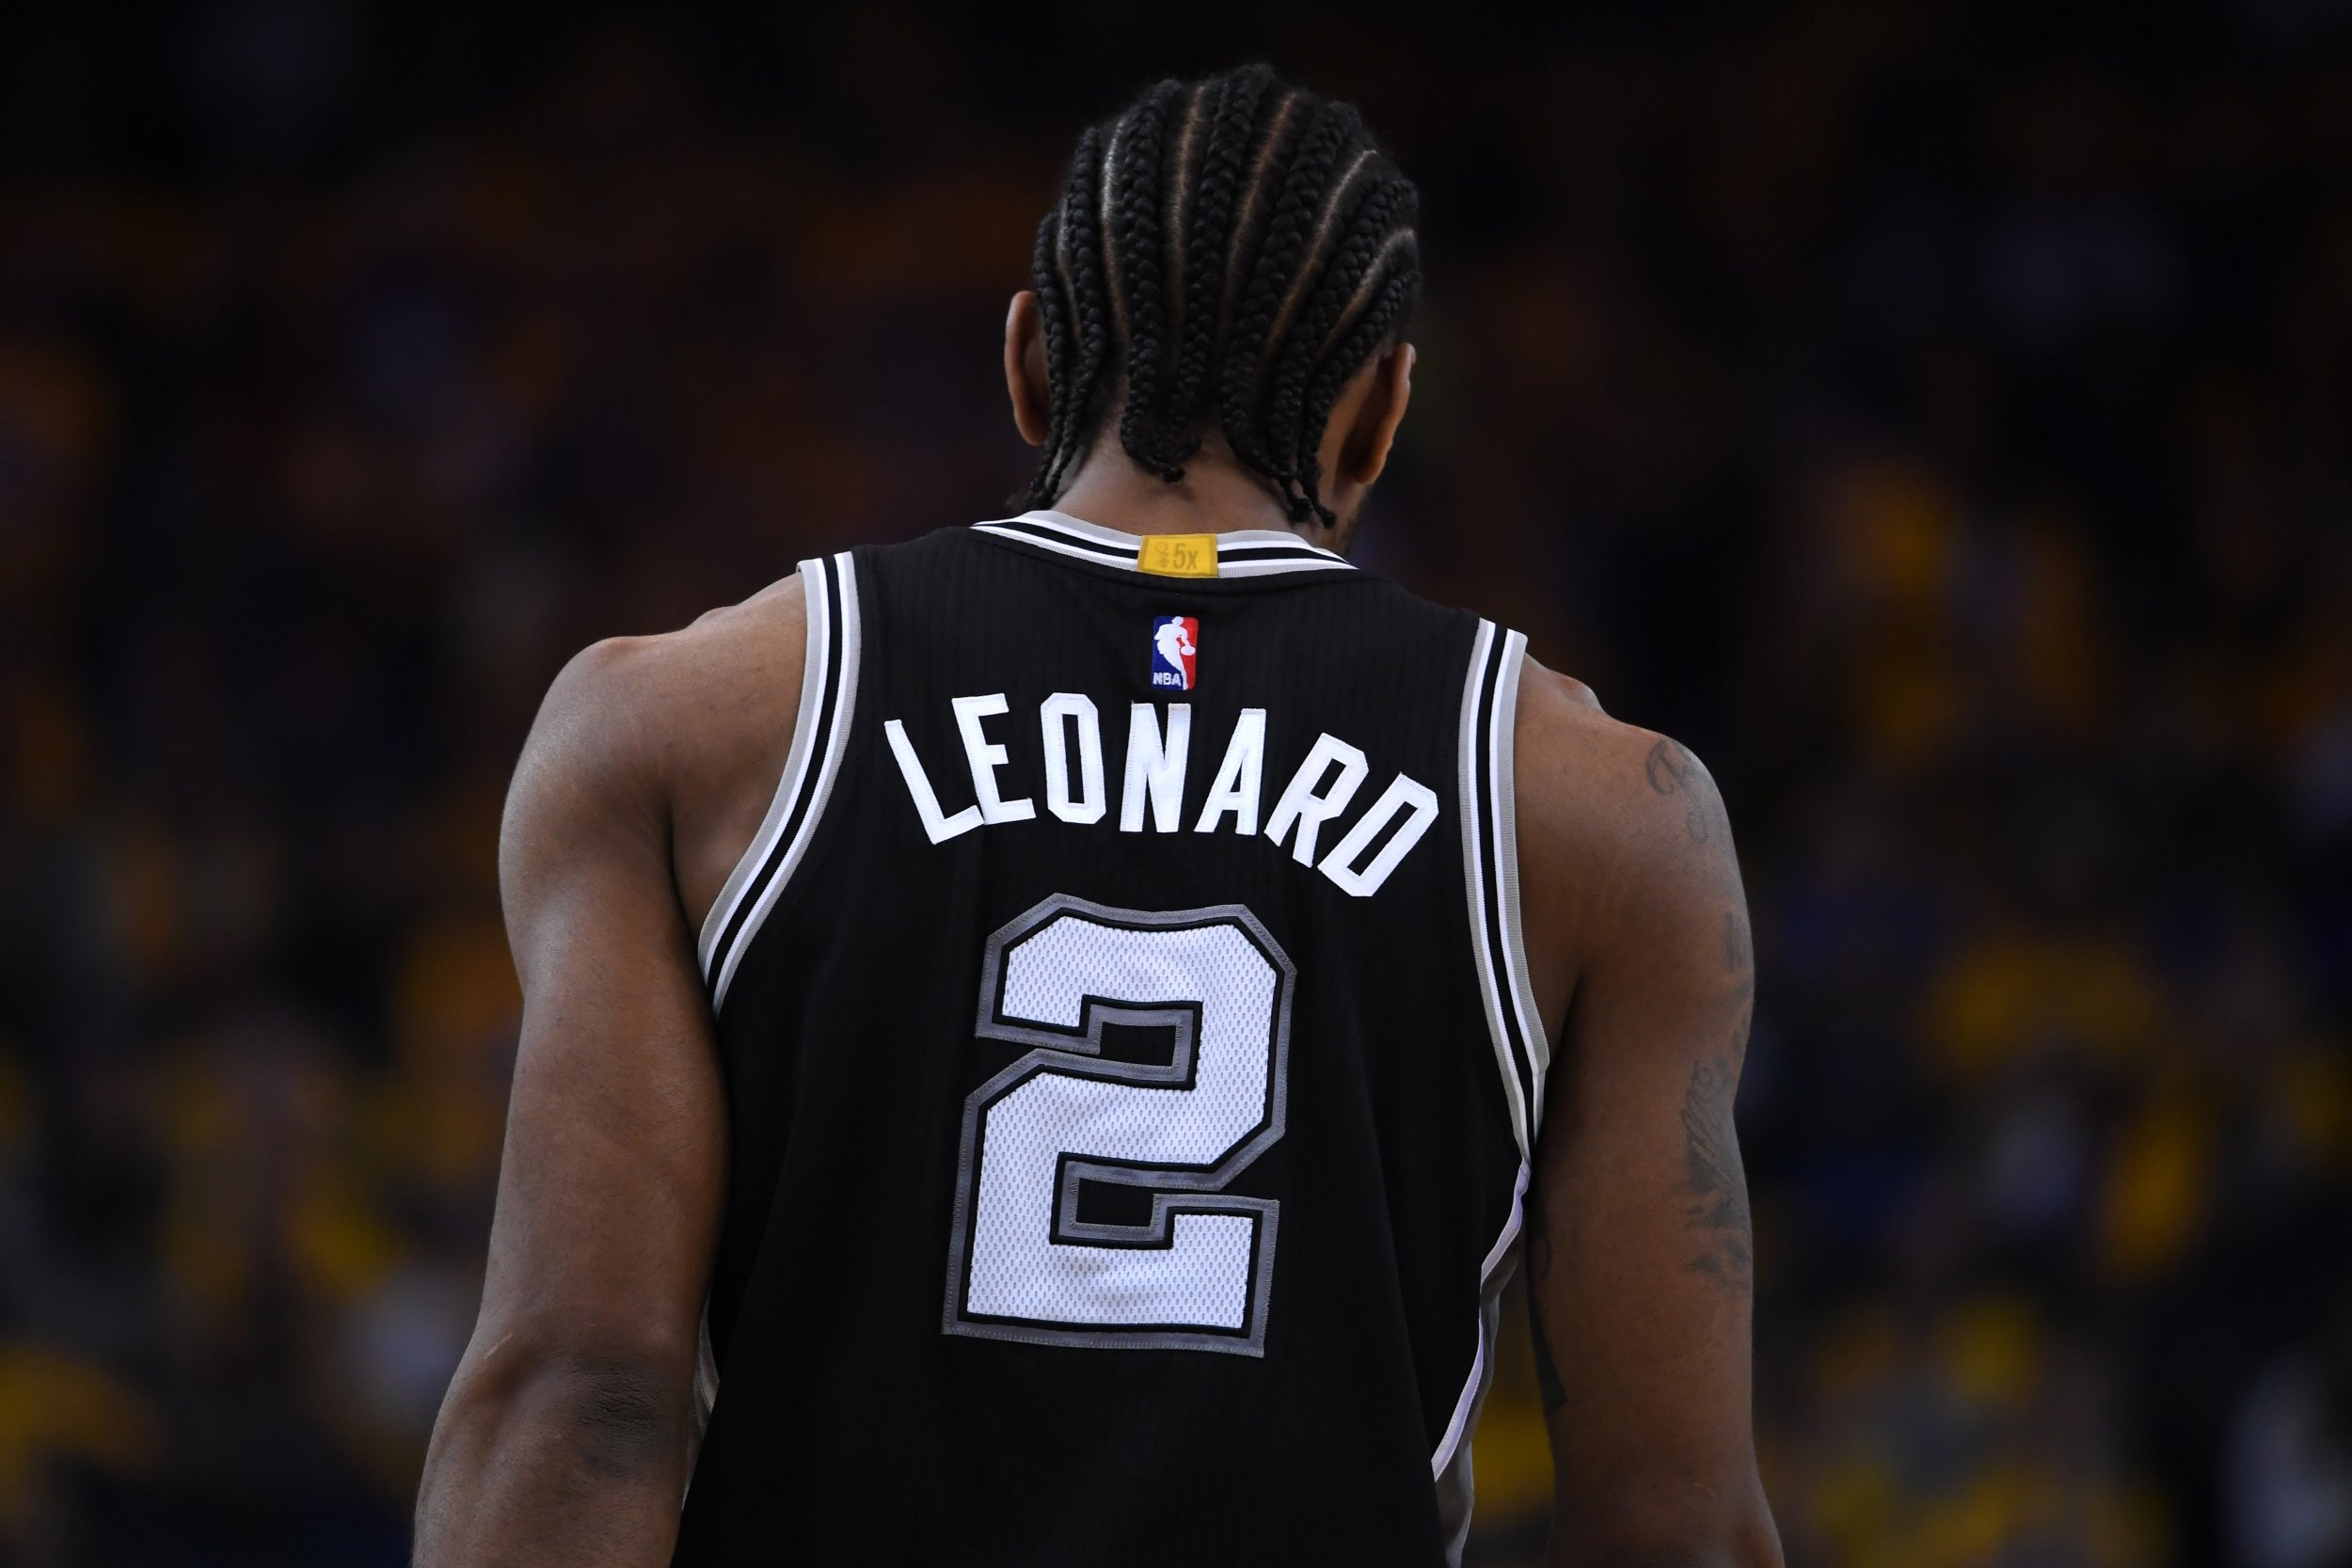 San Antonio Spurs forward Kawhi Leonard.